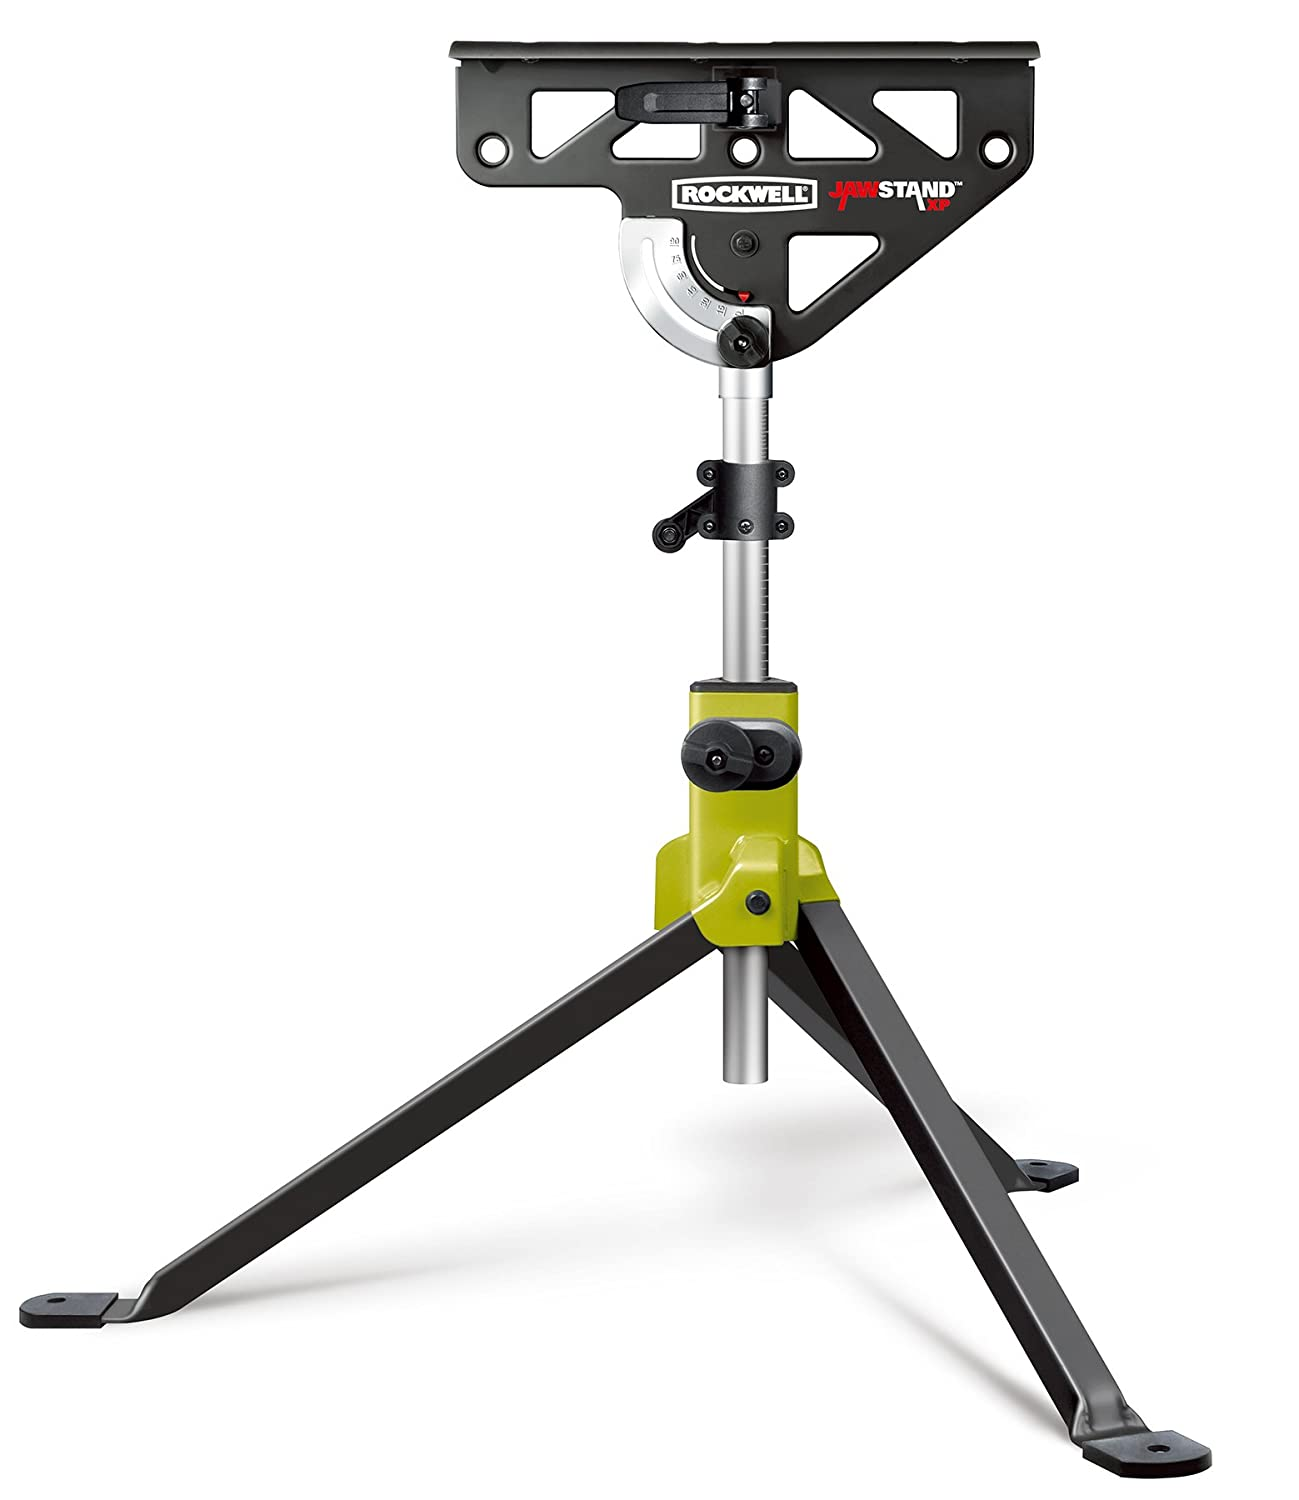 Rockwell RK9034 JawStand XP Work Support Stand